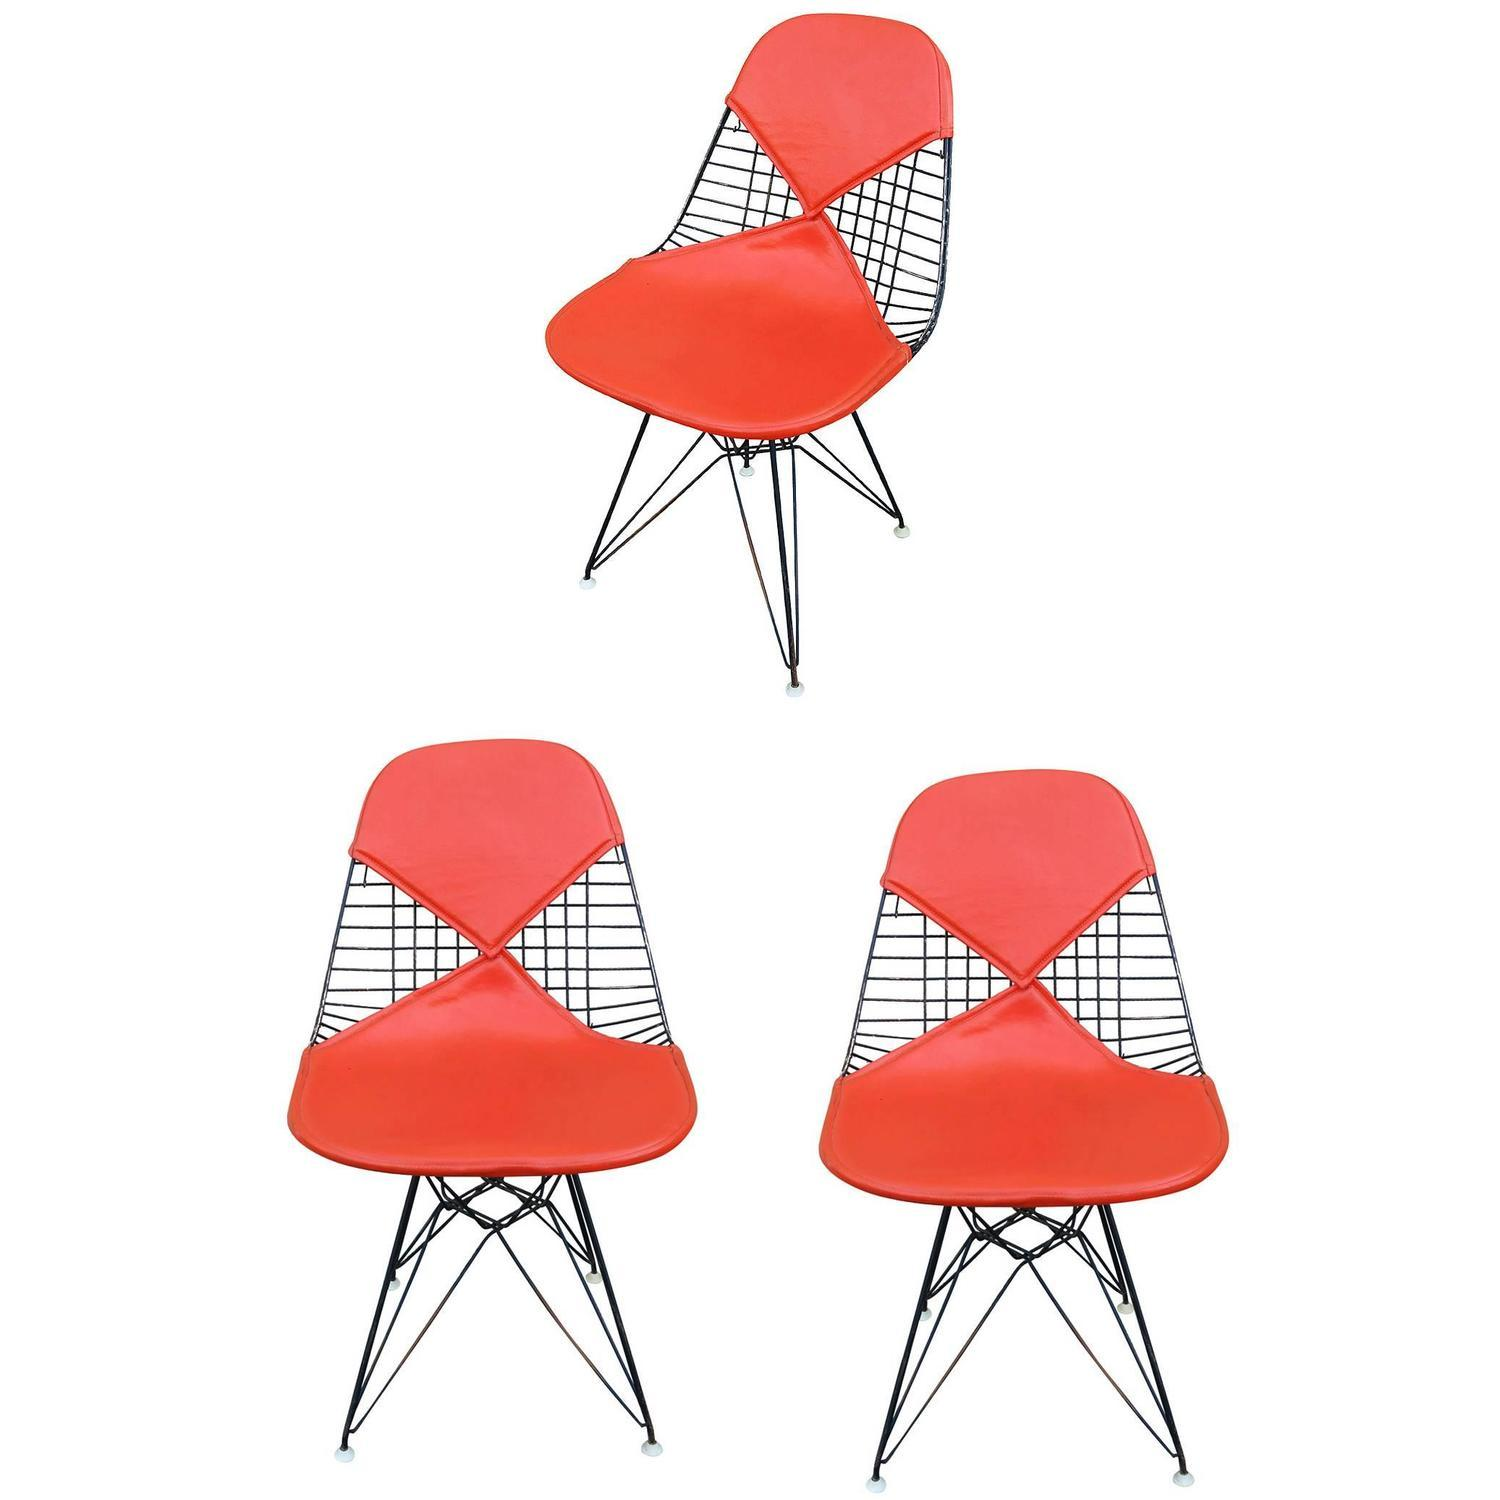 Herman miller eames dkr bikini chairs set of 3 chairish for Chaise eames dkr